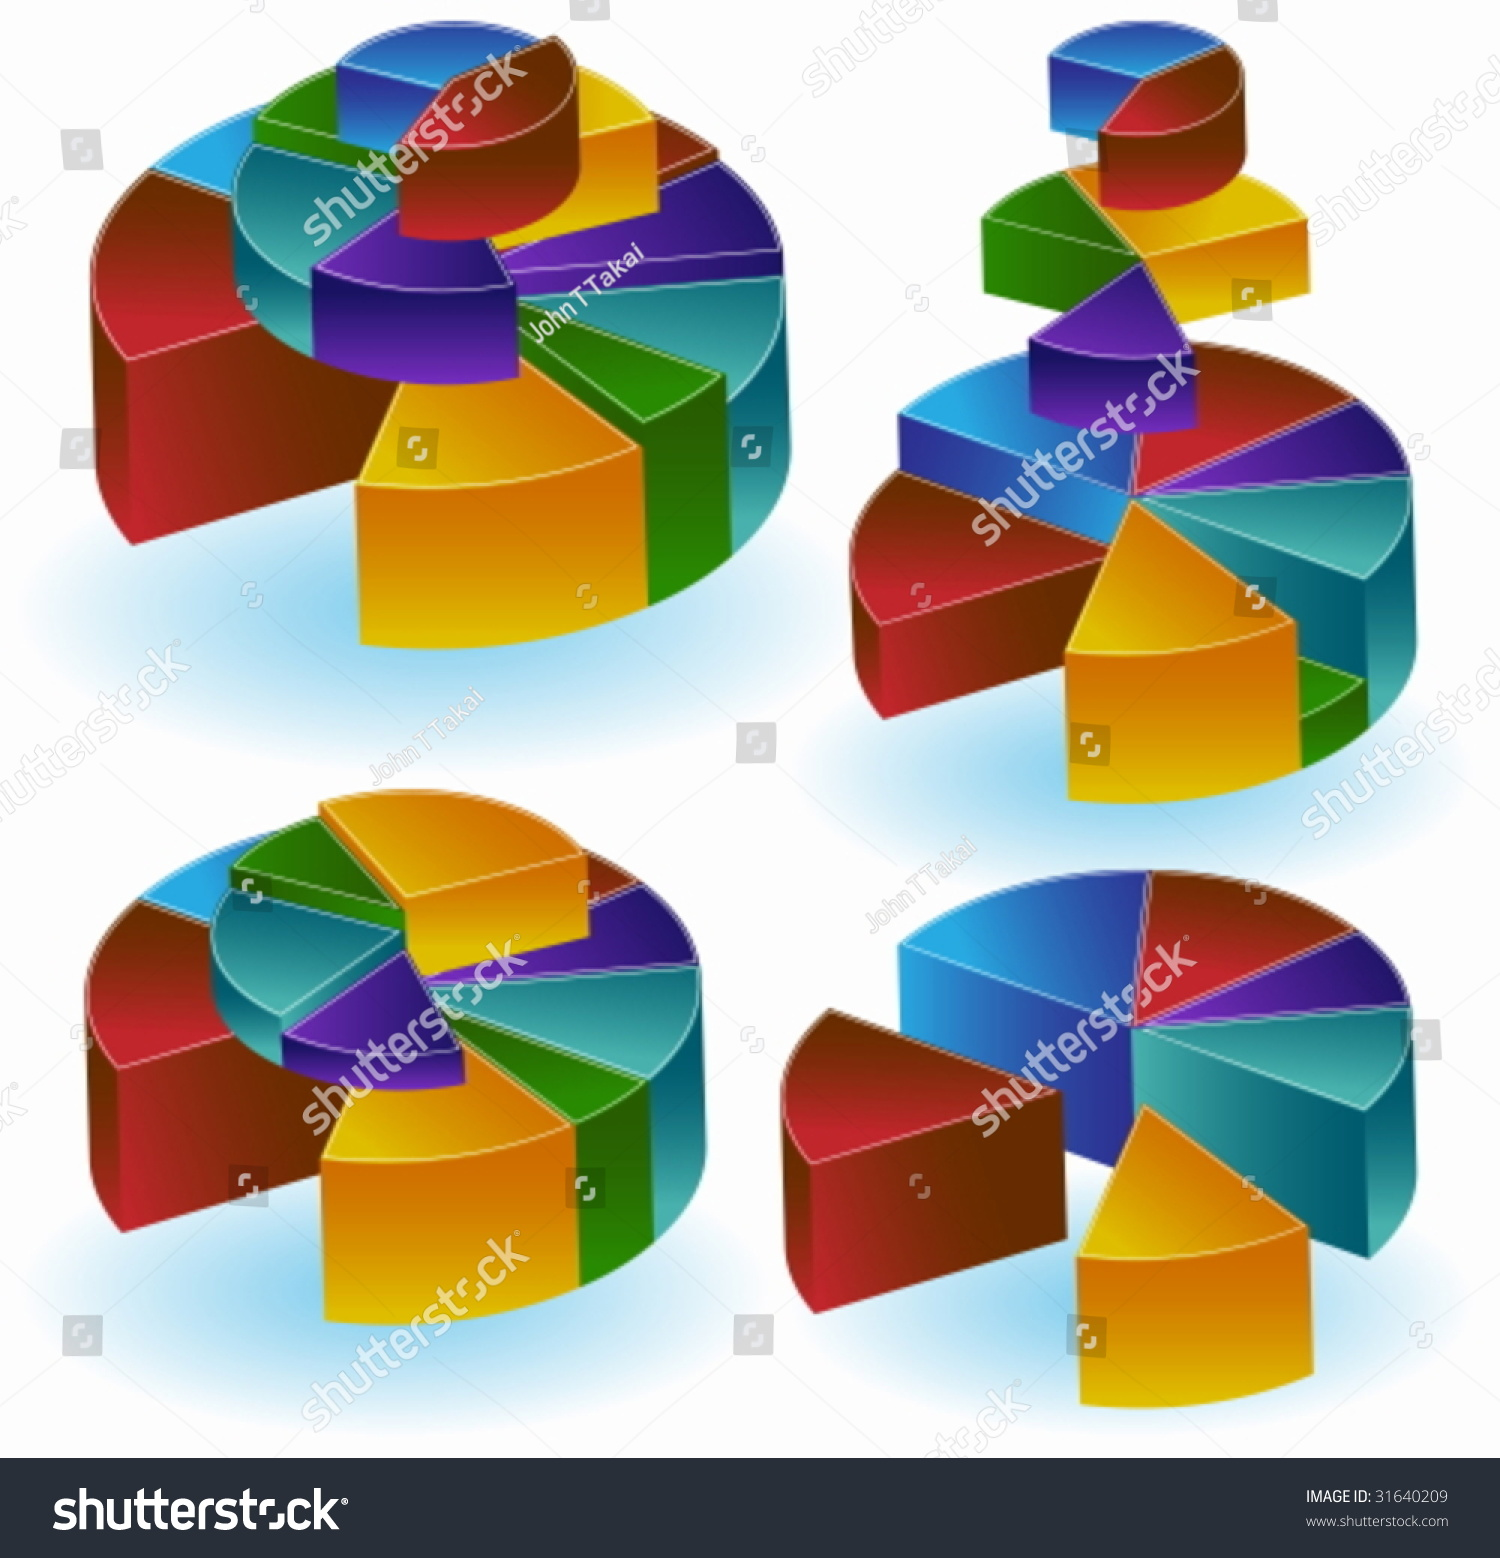 Jquery animated pie chart images free any chart examples jquery animated pie chart image collections free any chart examples animated pie chart jquery gallery free nvjuhfo Images